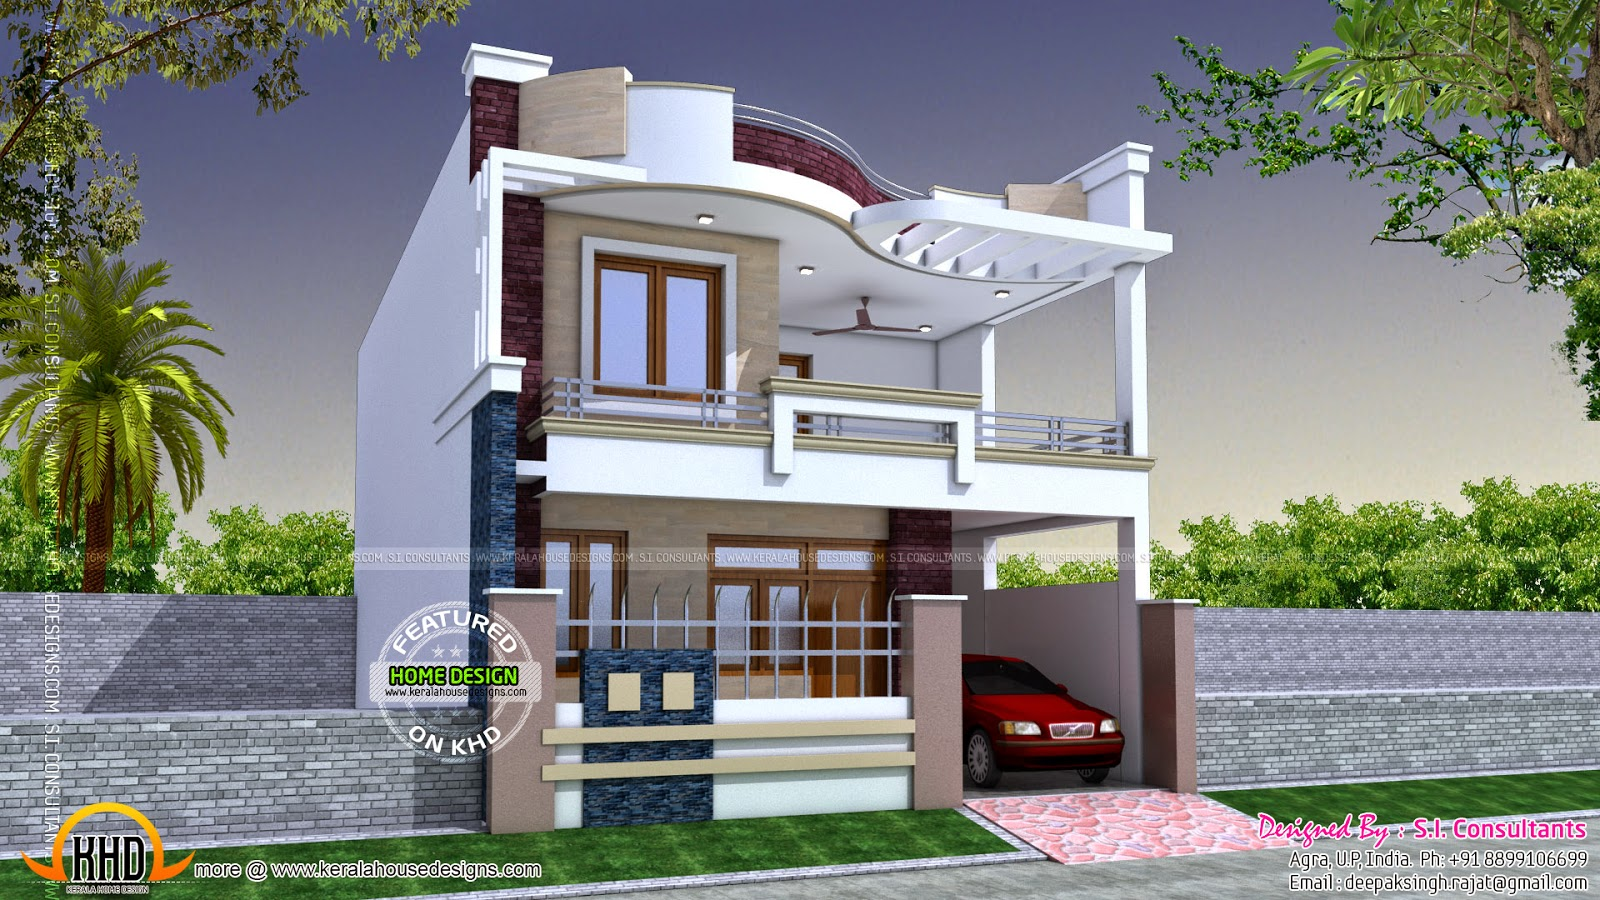 Superb Awesome Home Design For India Photos Eddymerckxus Eddymerckxus Pictures